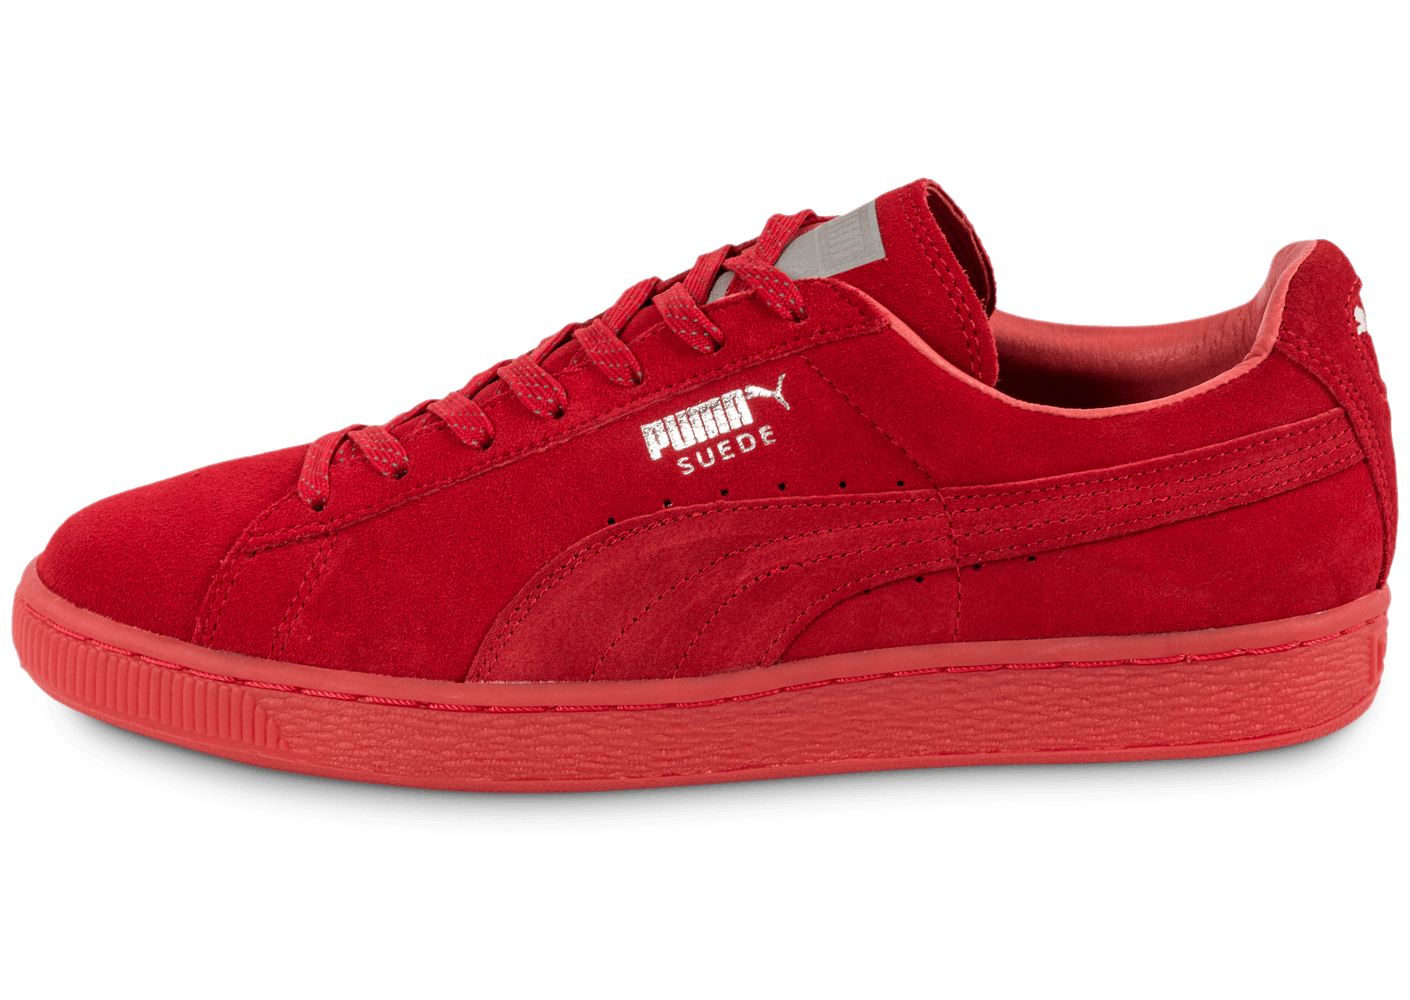 puma suede classic ref iced red chaussures homme chausport. Black Bedroom Furniture Sets. Home Design Ideas